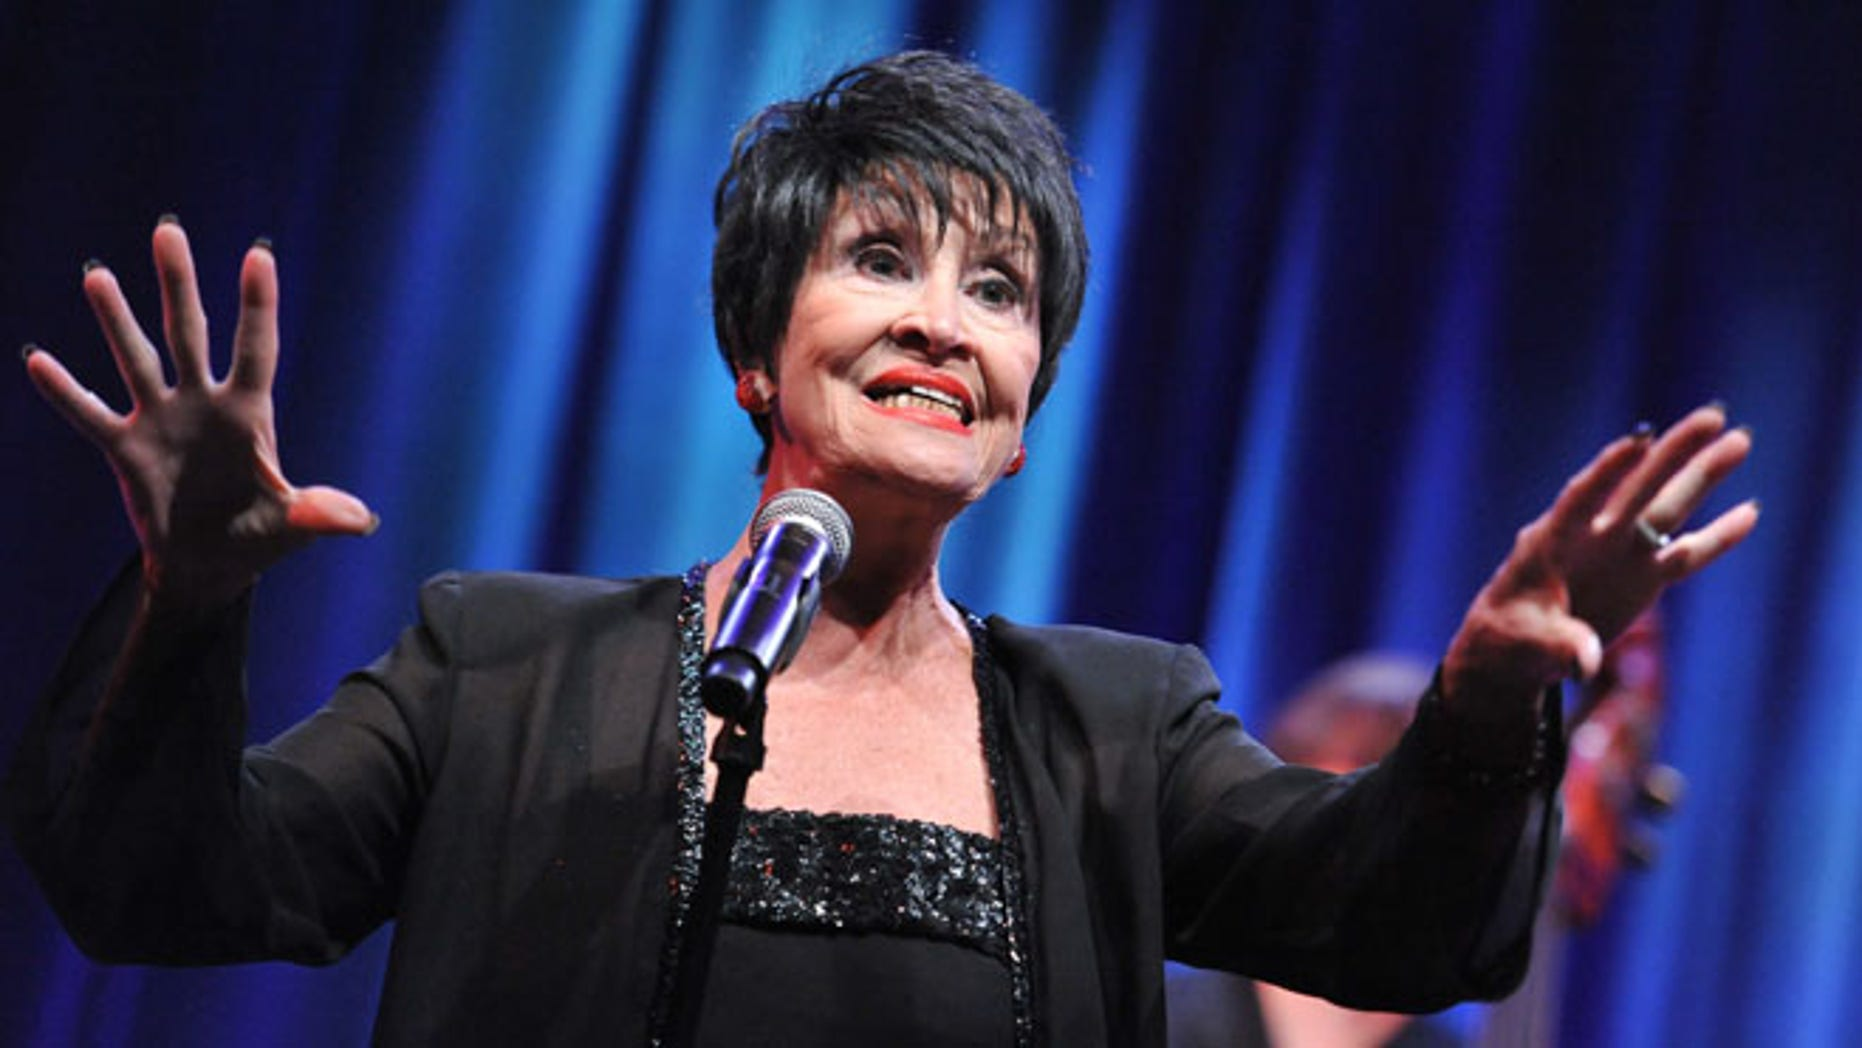 FILE - In a Sunday, Aug. 2, 2015 file photo, Chita Rivera performs during the âChita Rivera: A Lot of Livinâ to Doâ segment of the PBS 2015 Summer TCA Tour held at the Beverly Hilton Hotel in Beverly Hills, Calif. Rivera postponed her show at at Cafe Carlyl after being injured in a fall over the Christmas holiday. Rivera, who was to appear at the legendary venue on Jan. 12-23, will now take the stage from April 19-30 as she recovers from a pelvic stress fracture. (Photo by Richard Shotwell/Invision/AP, File)